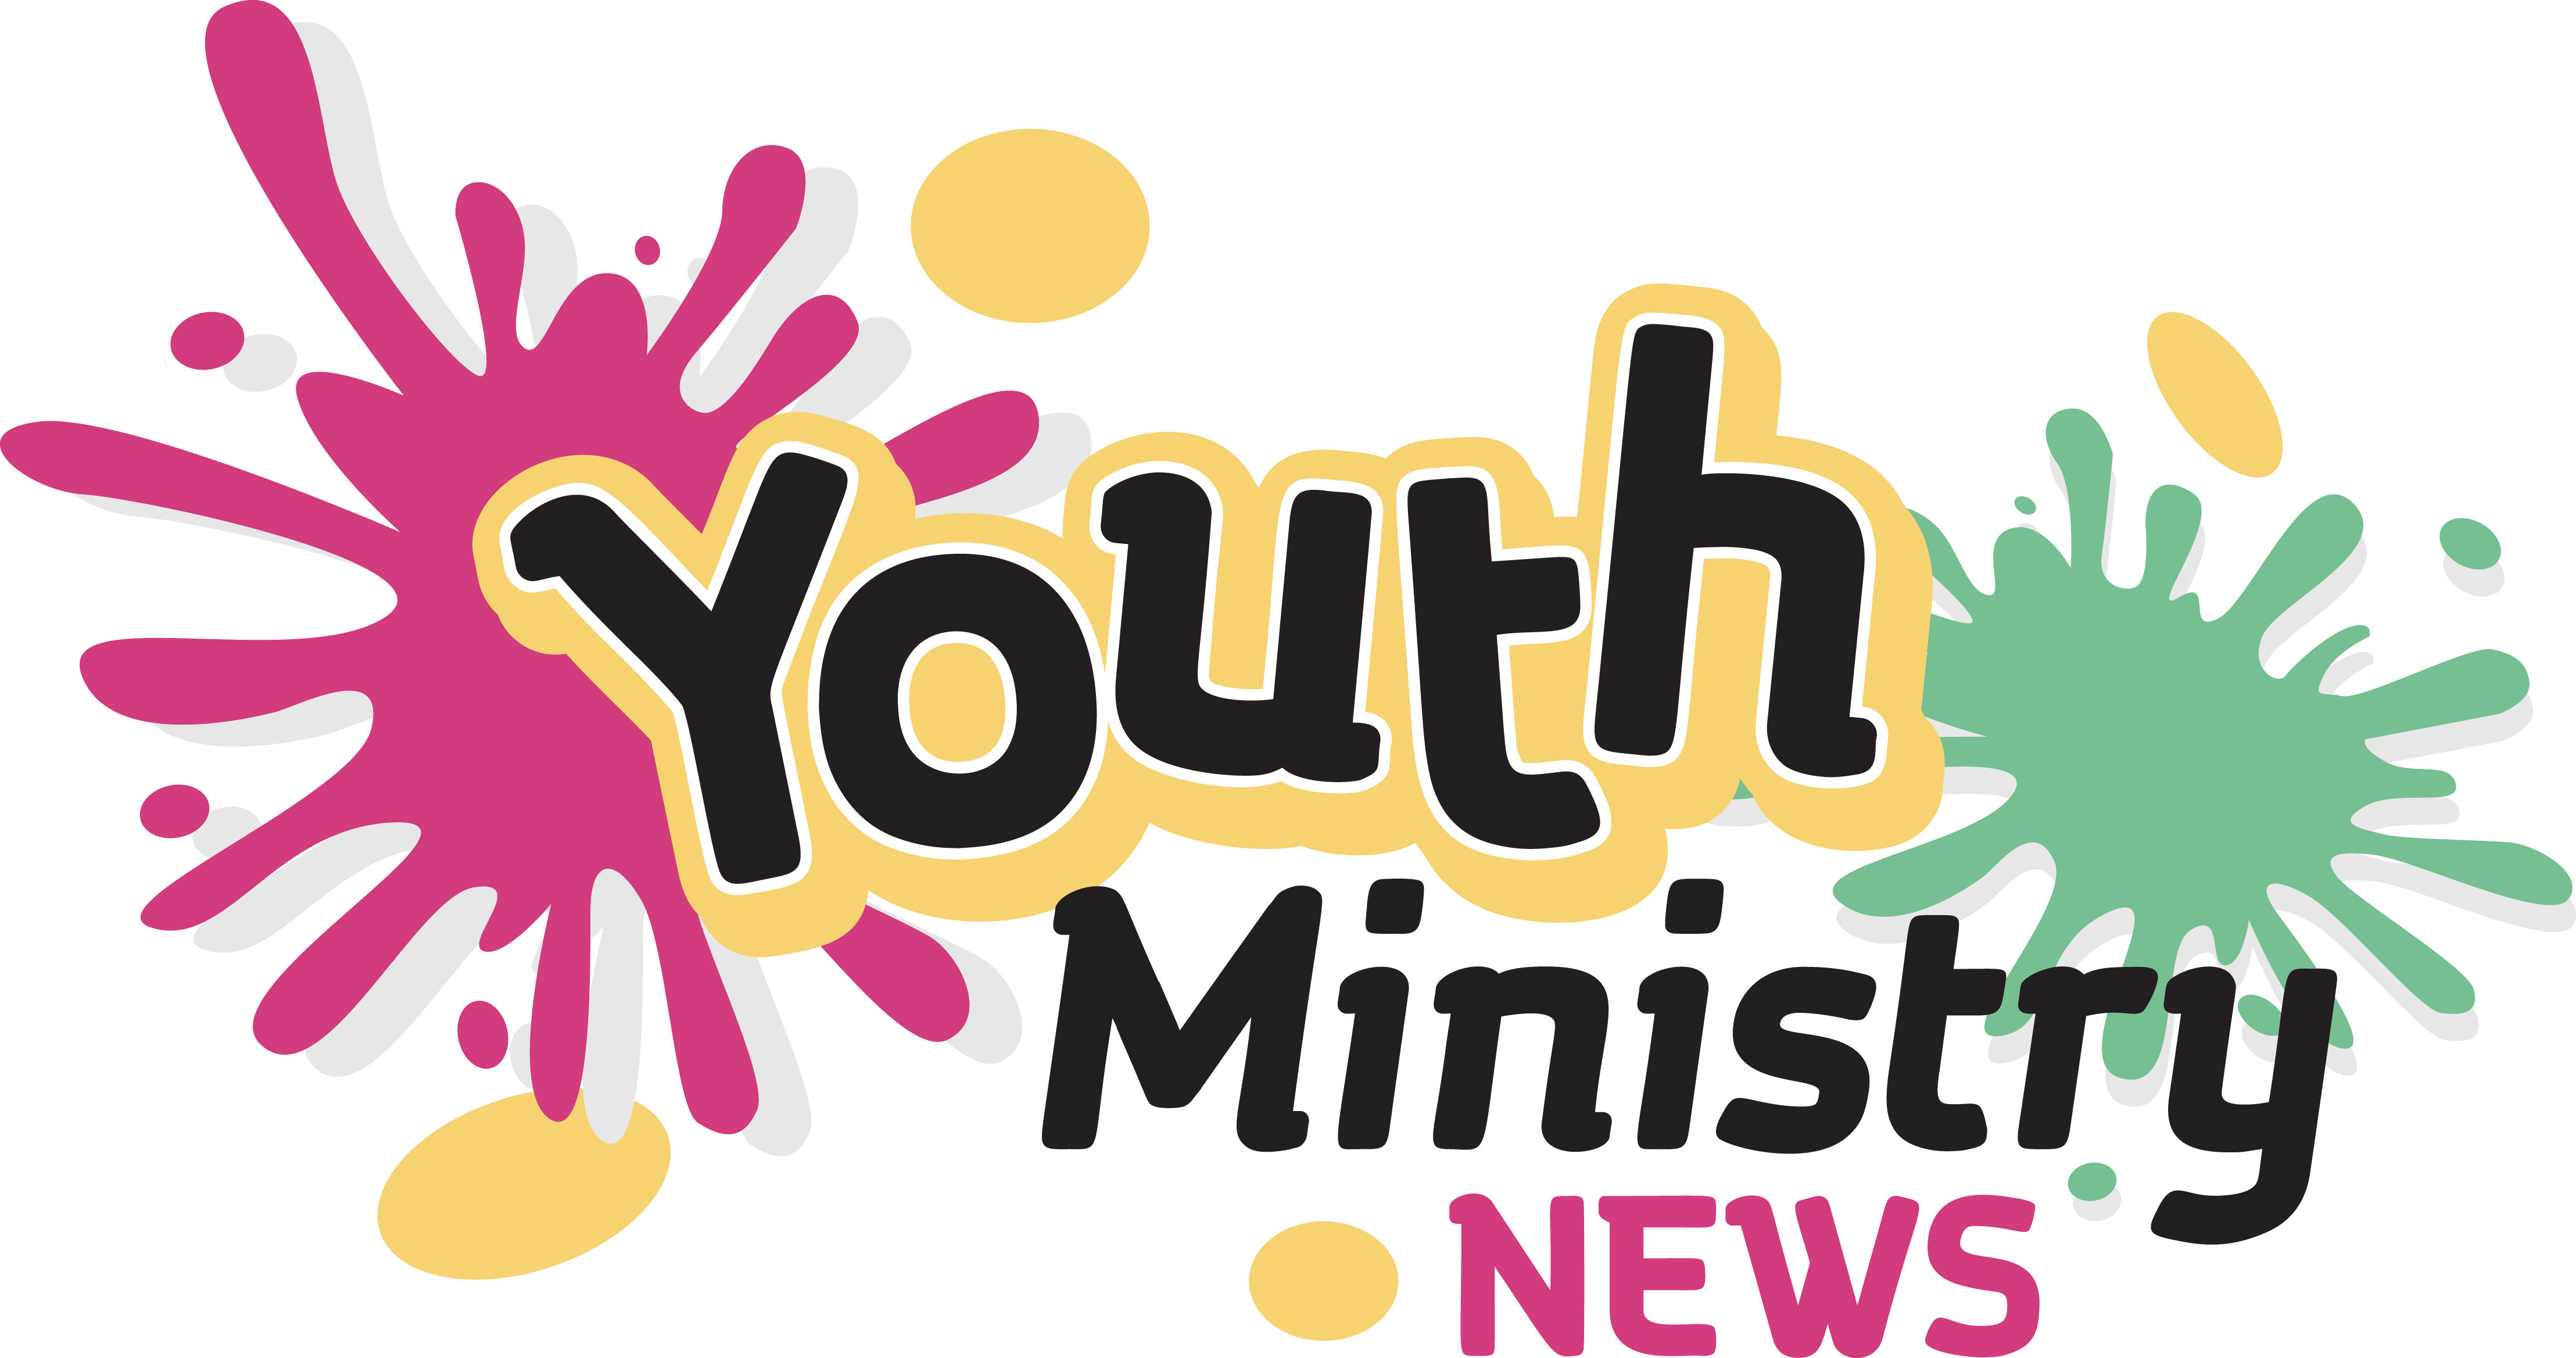 Youth news clipart images free download Shepherd of the Hills » Youth Mixer Night for Middle Schoolers free download